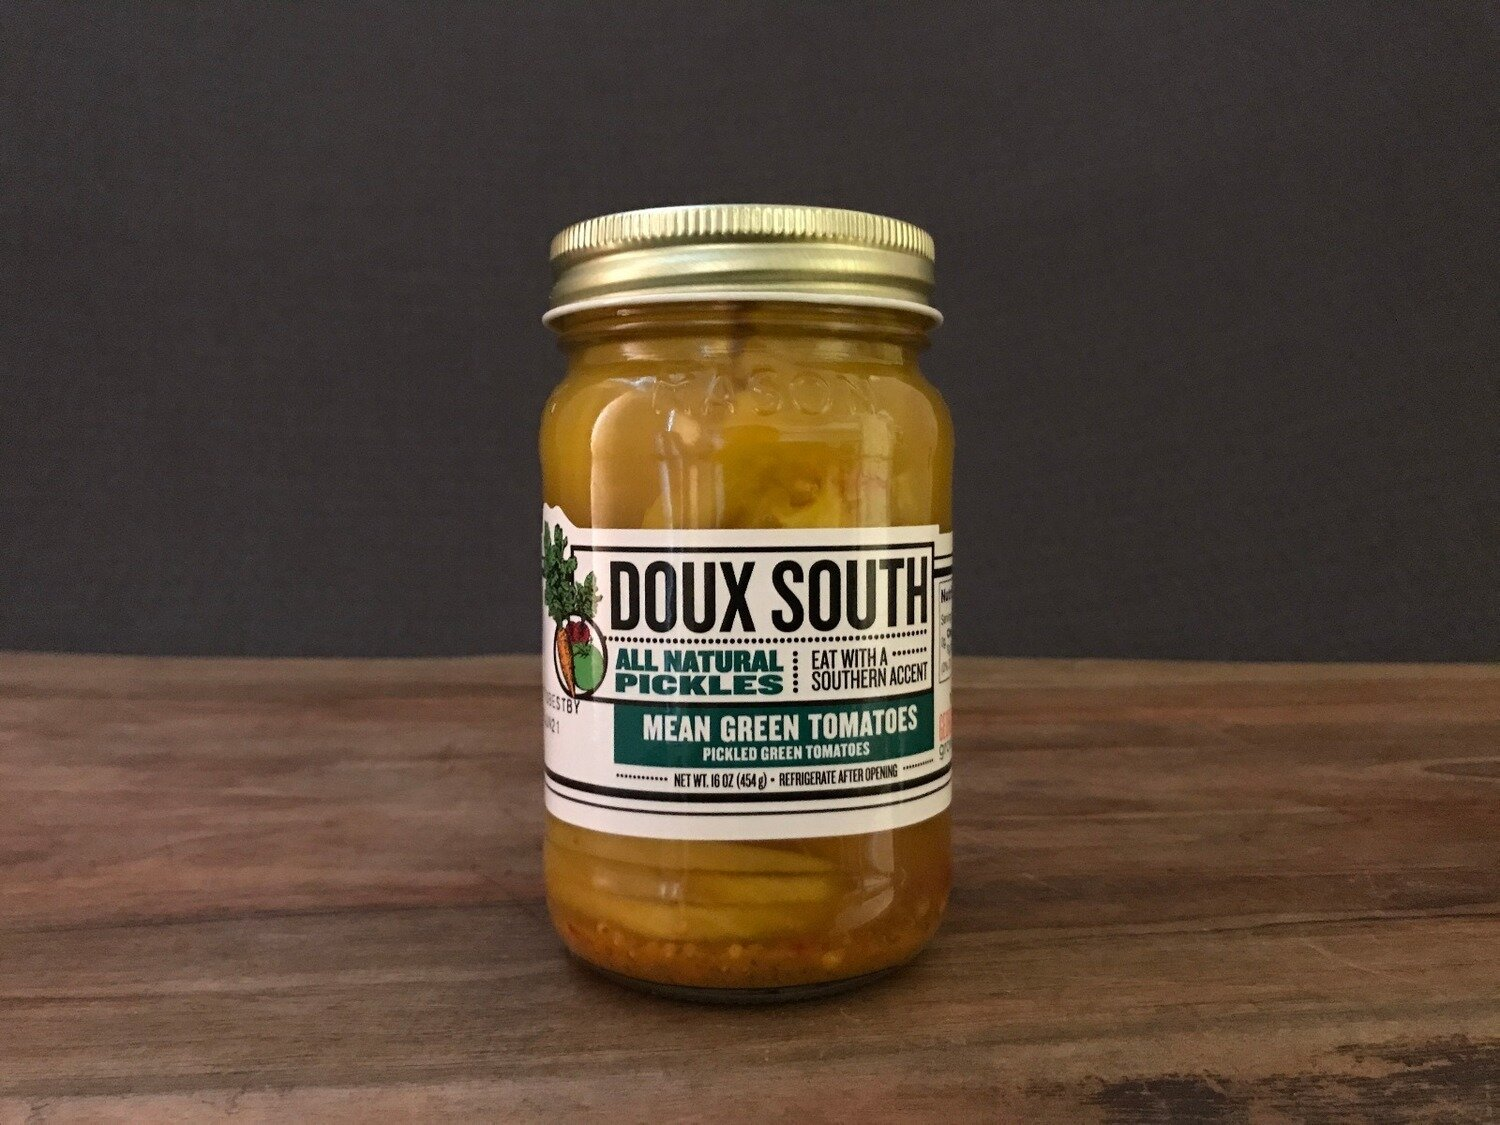 Doux South Mean Green Tomatoes 16oz